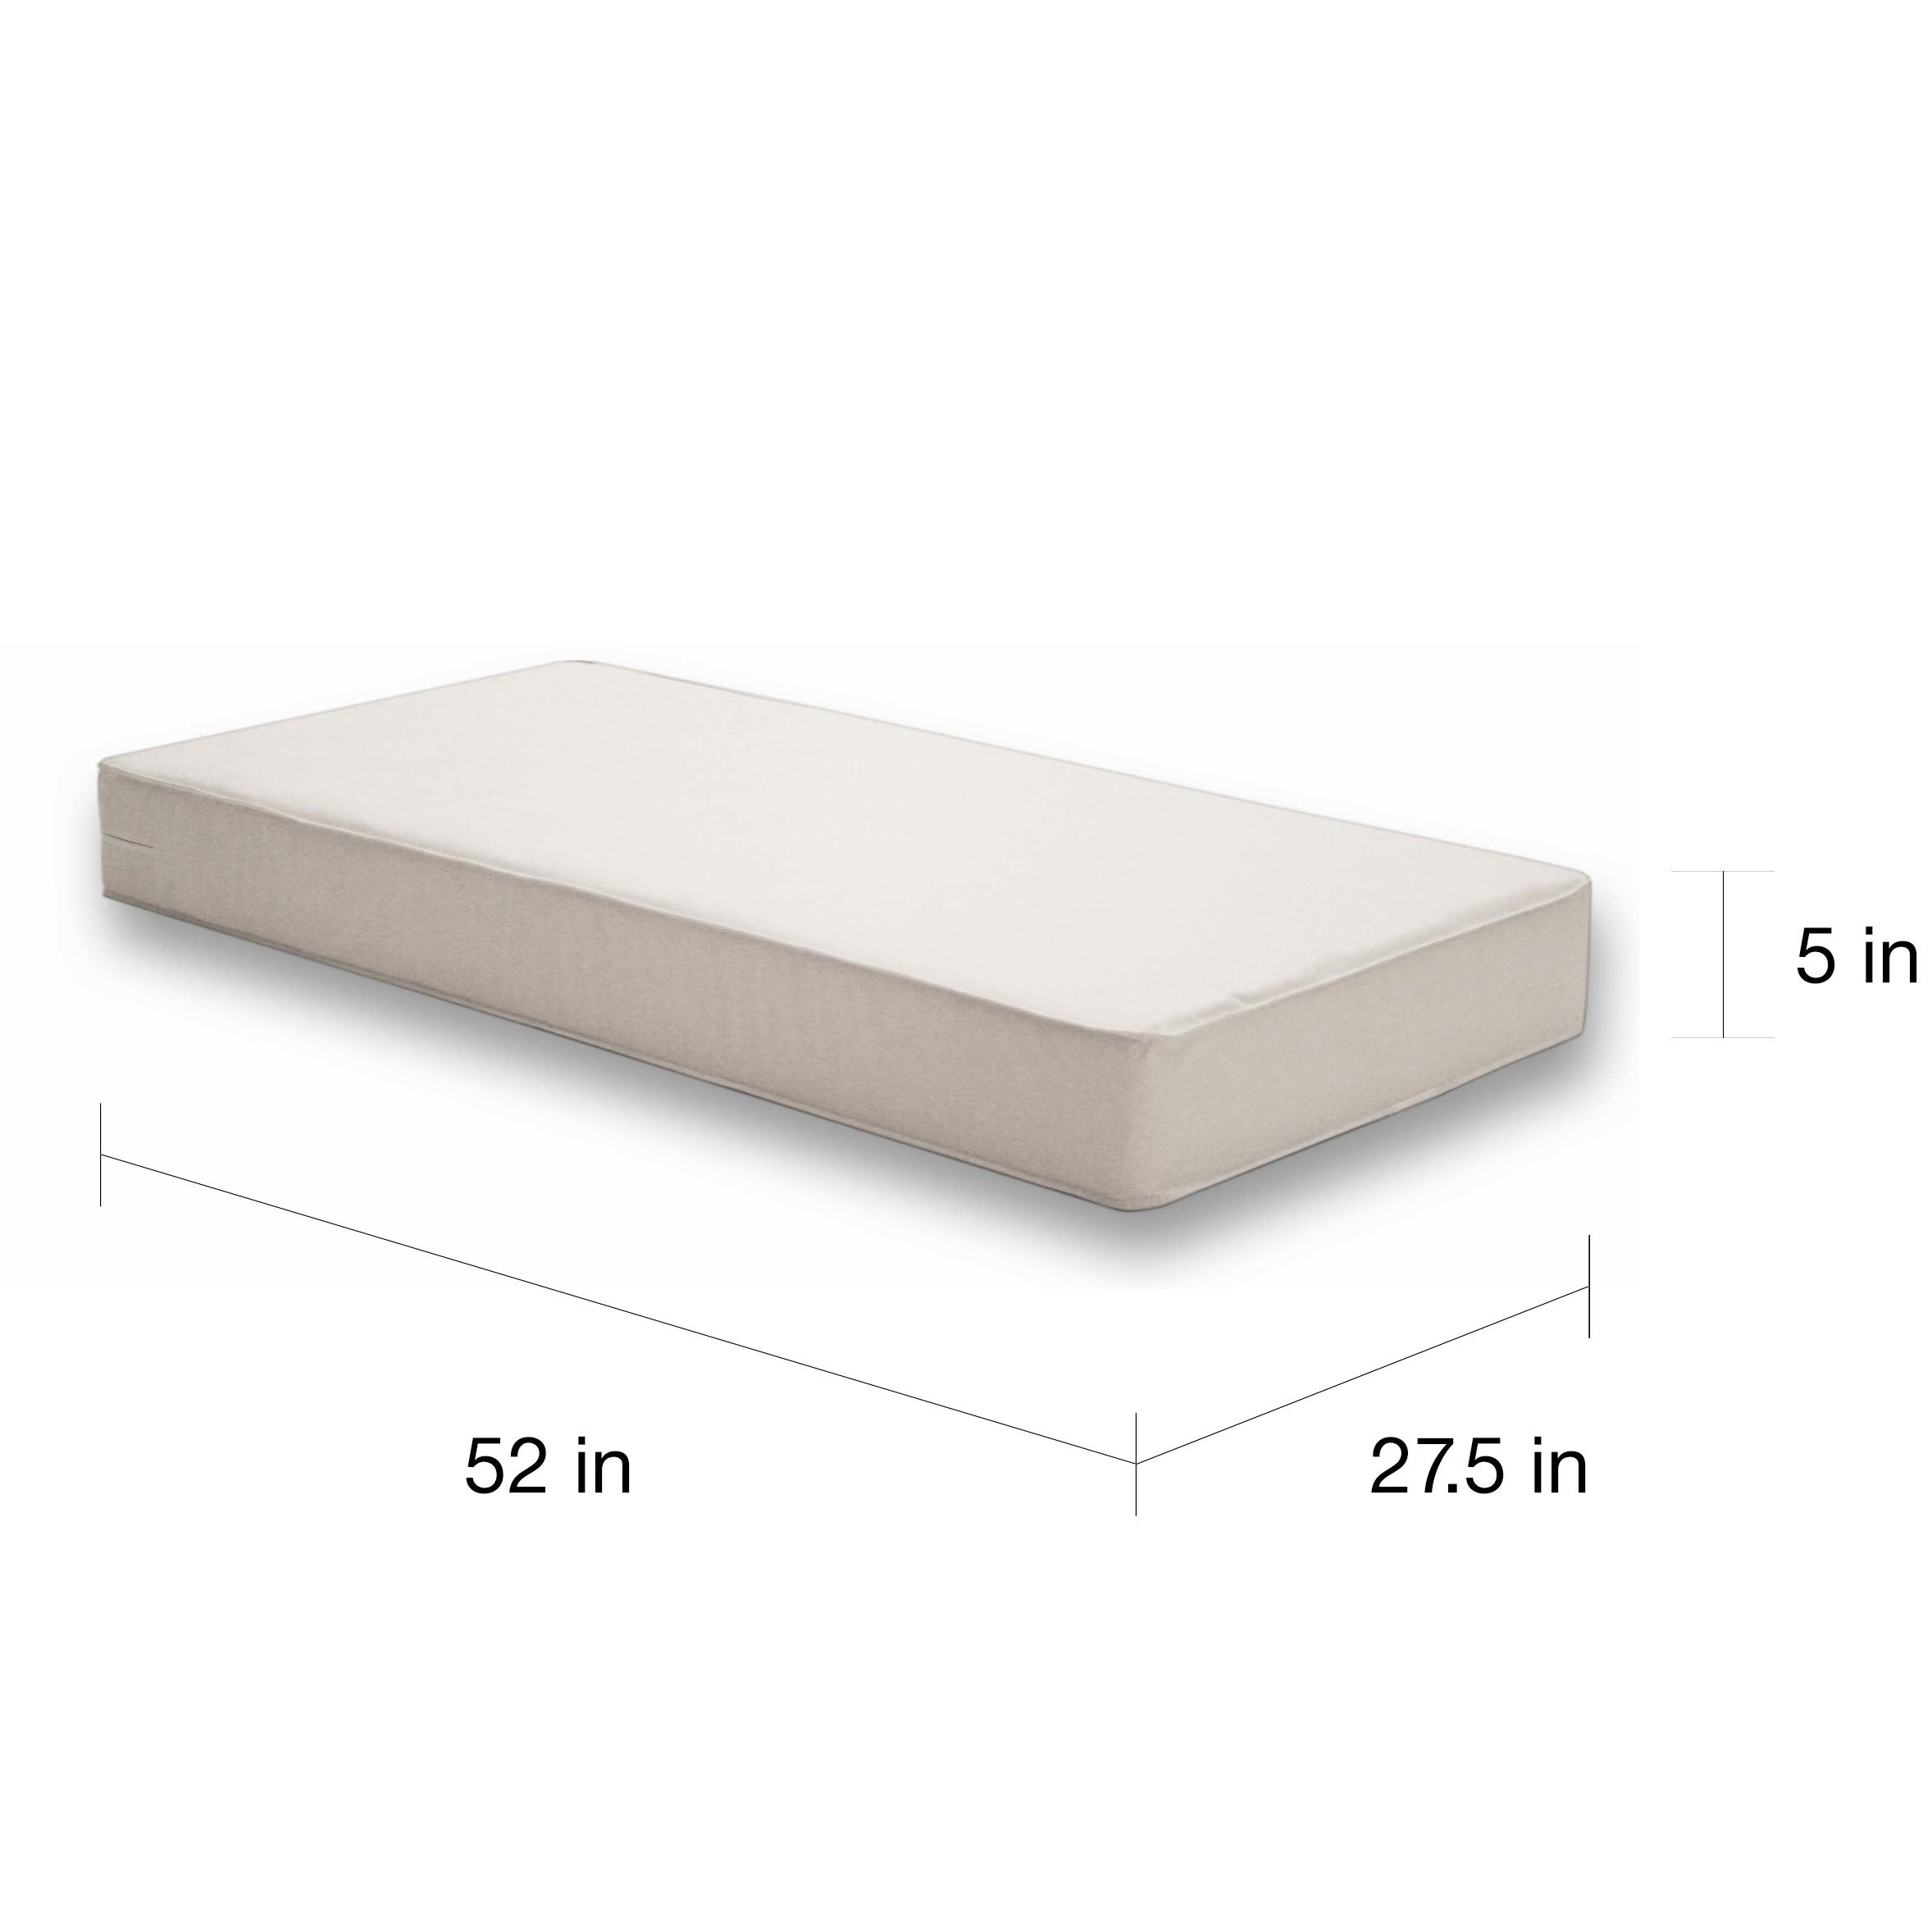 Dhp Safety First Heavenly Dreams Firm Crib Mattress Free Shipping Today 9473758